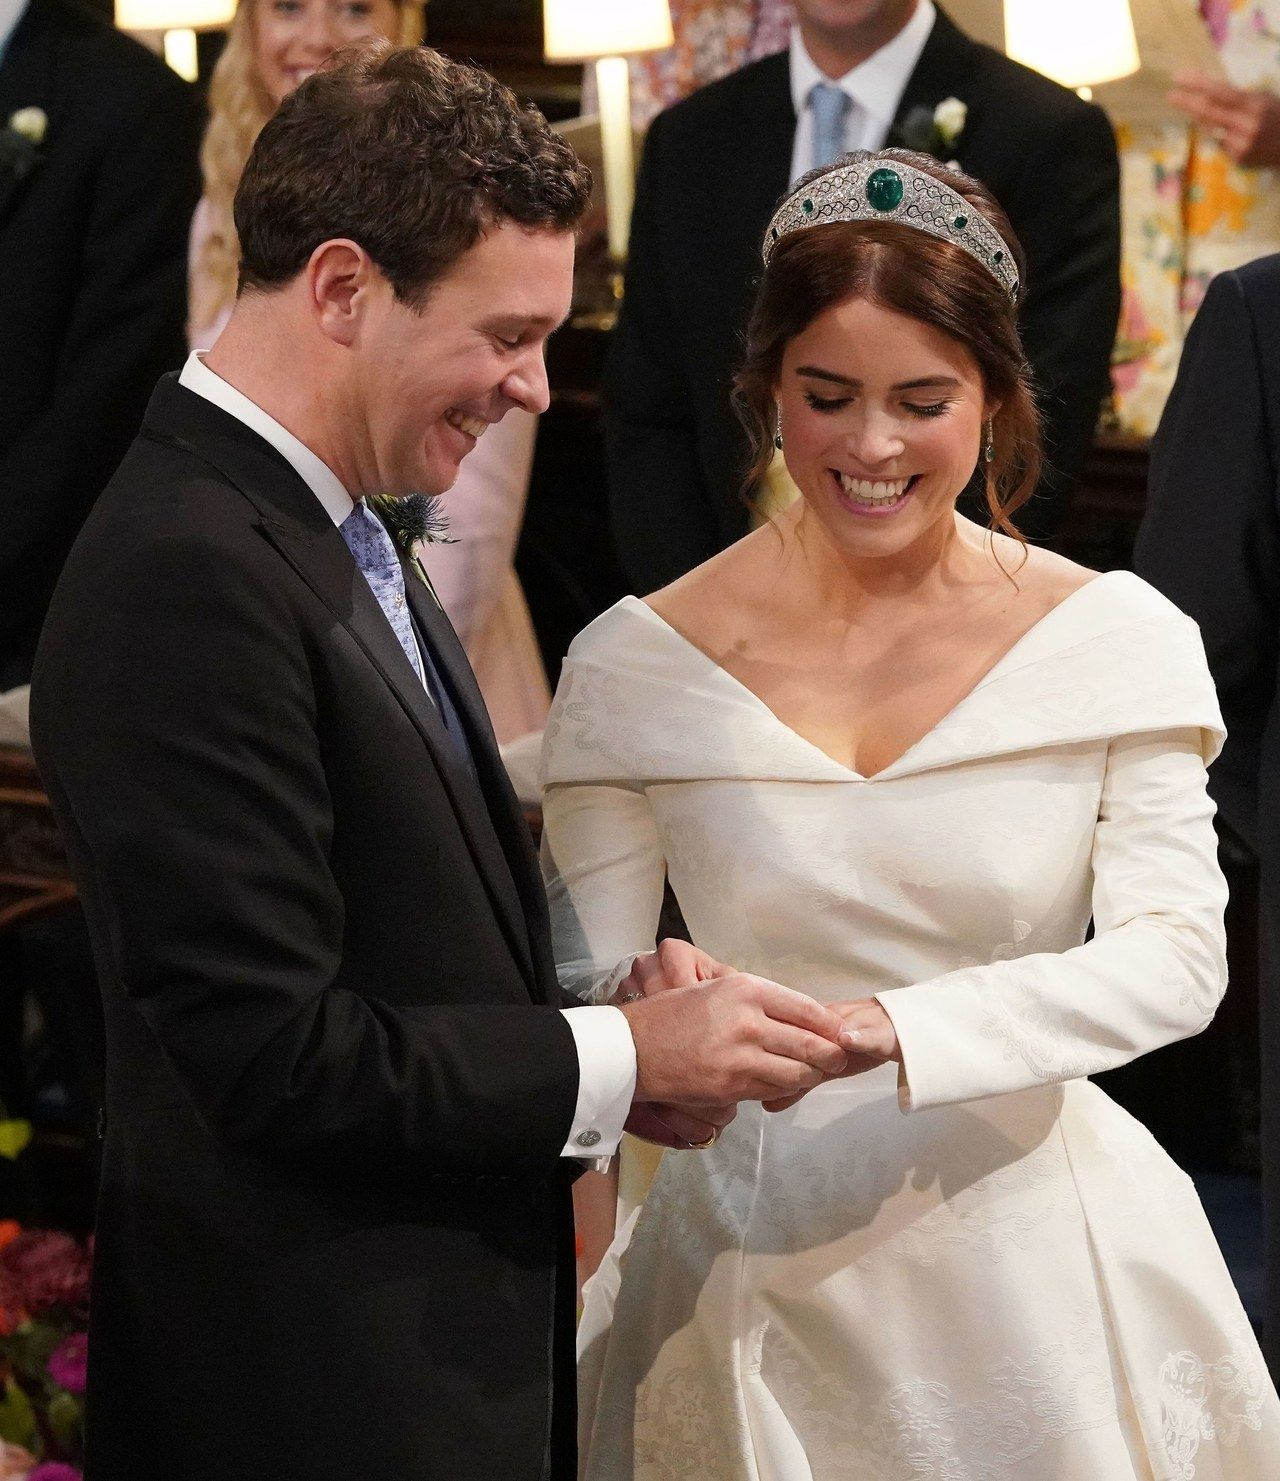 Gero Golden Boys the meaning behind princess eugenie's gorgeous royal wedding